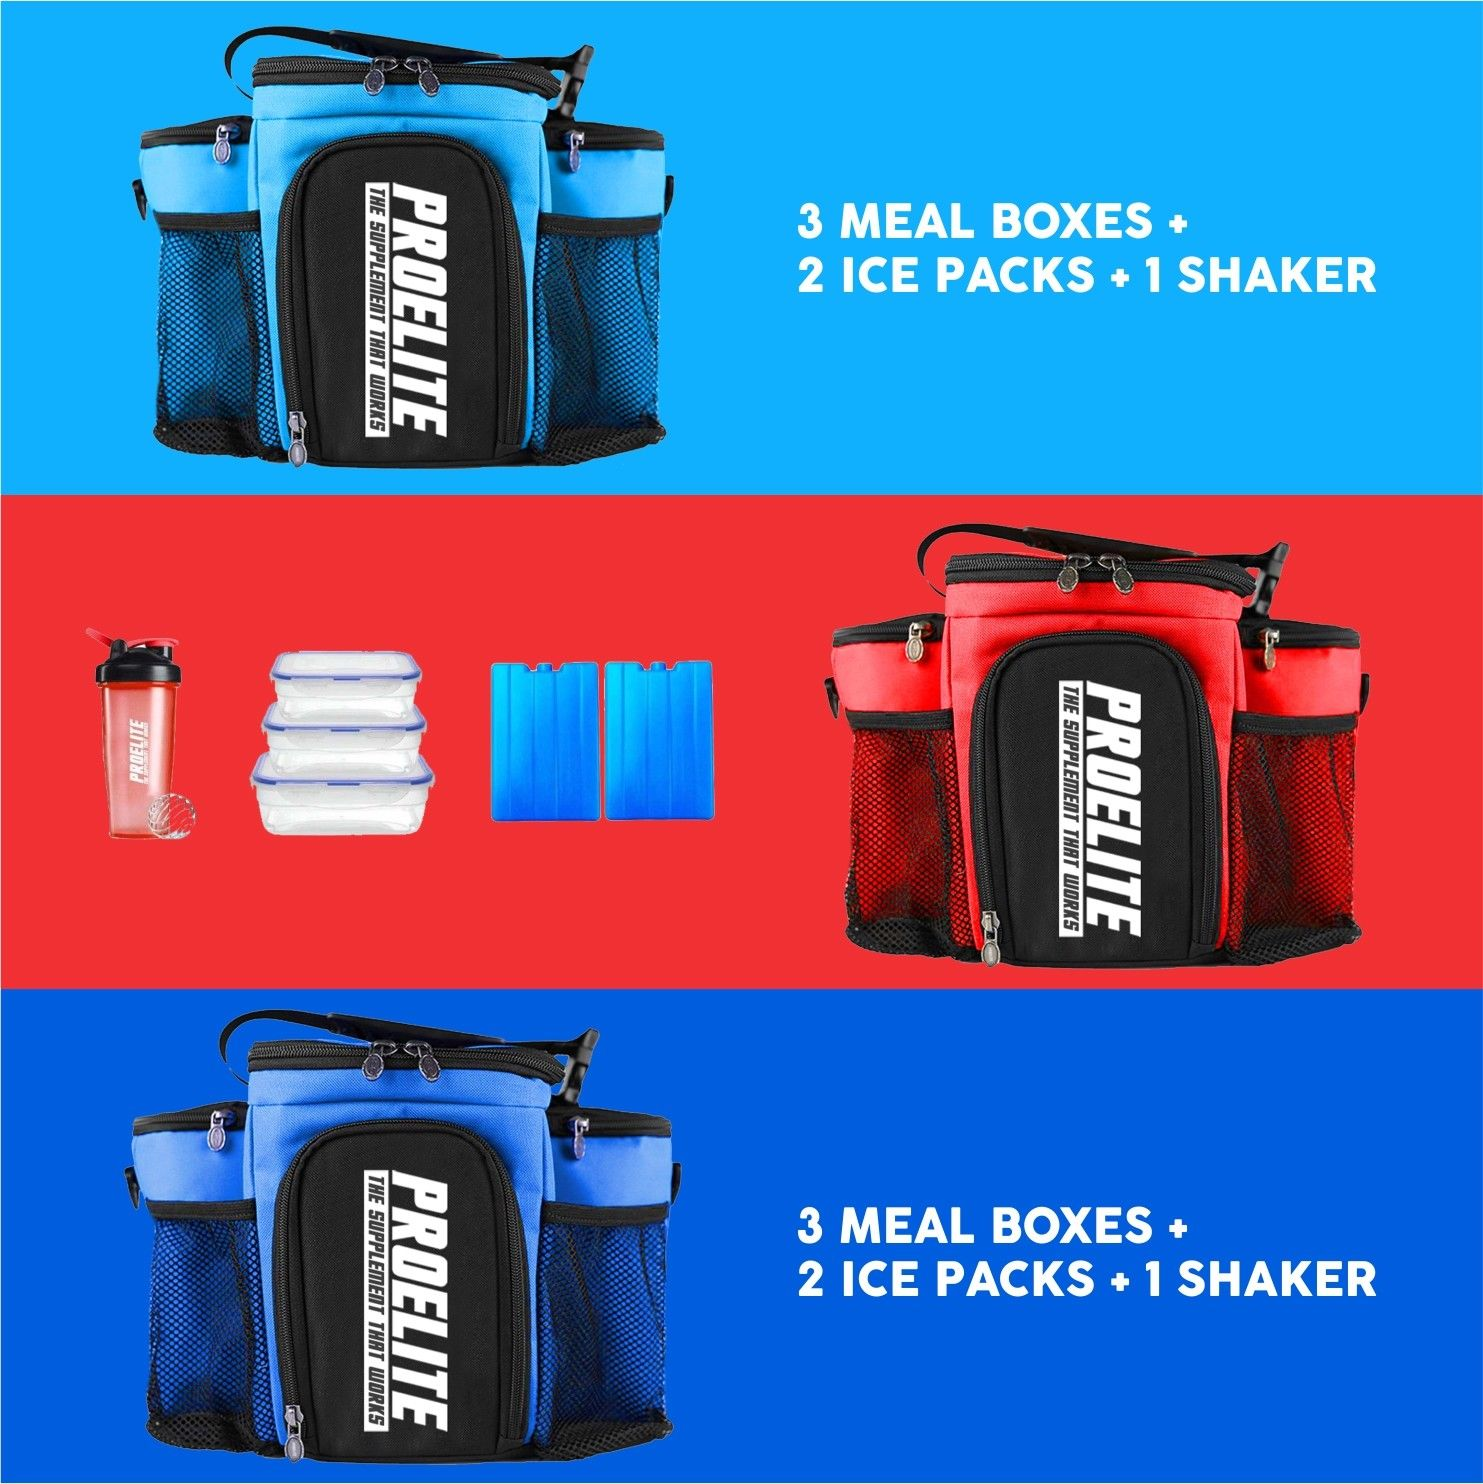 e66eefd07104 3 Meal Bag Food Prep Management Insulated Fitness Gym Cooler Lunch Box Food  Bag. Product Details. The Pro Elite 3 Meal System ...